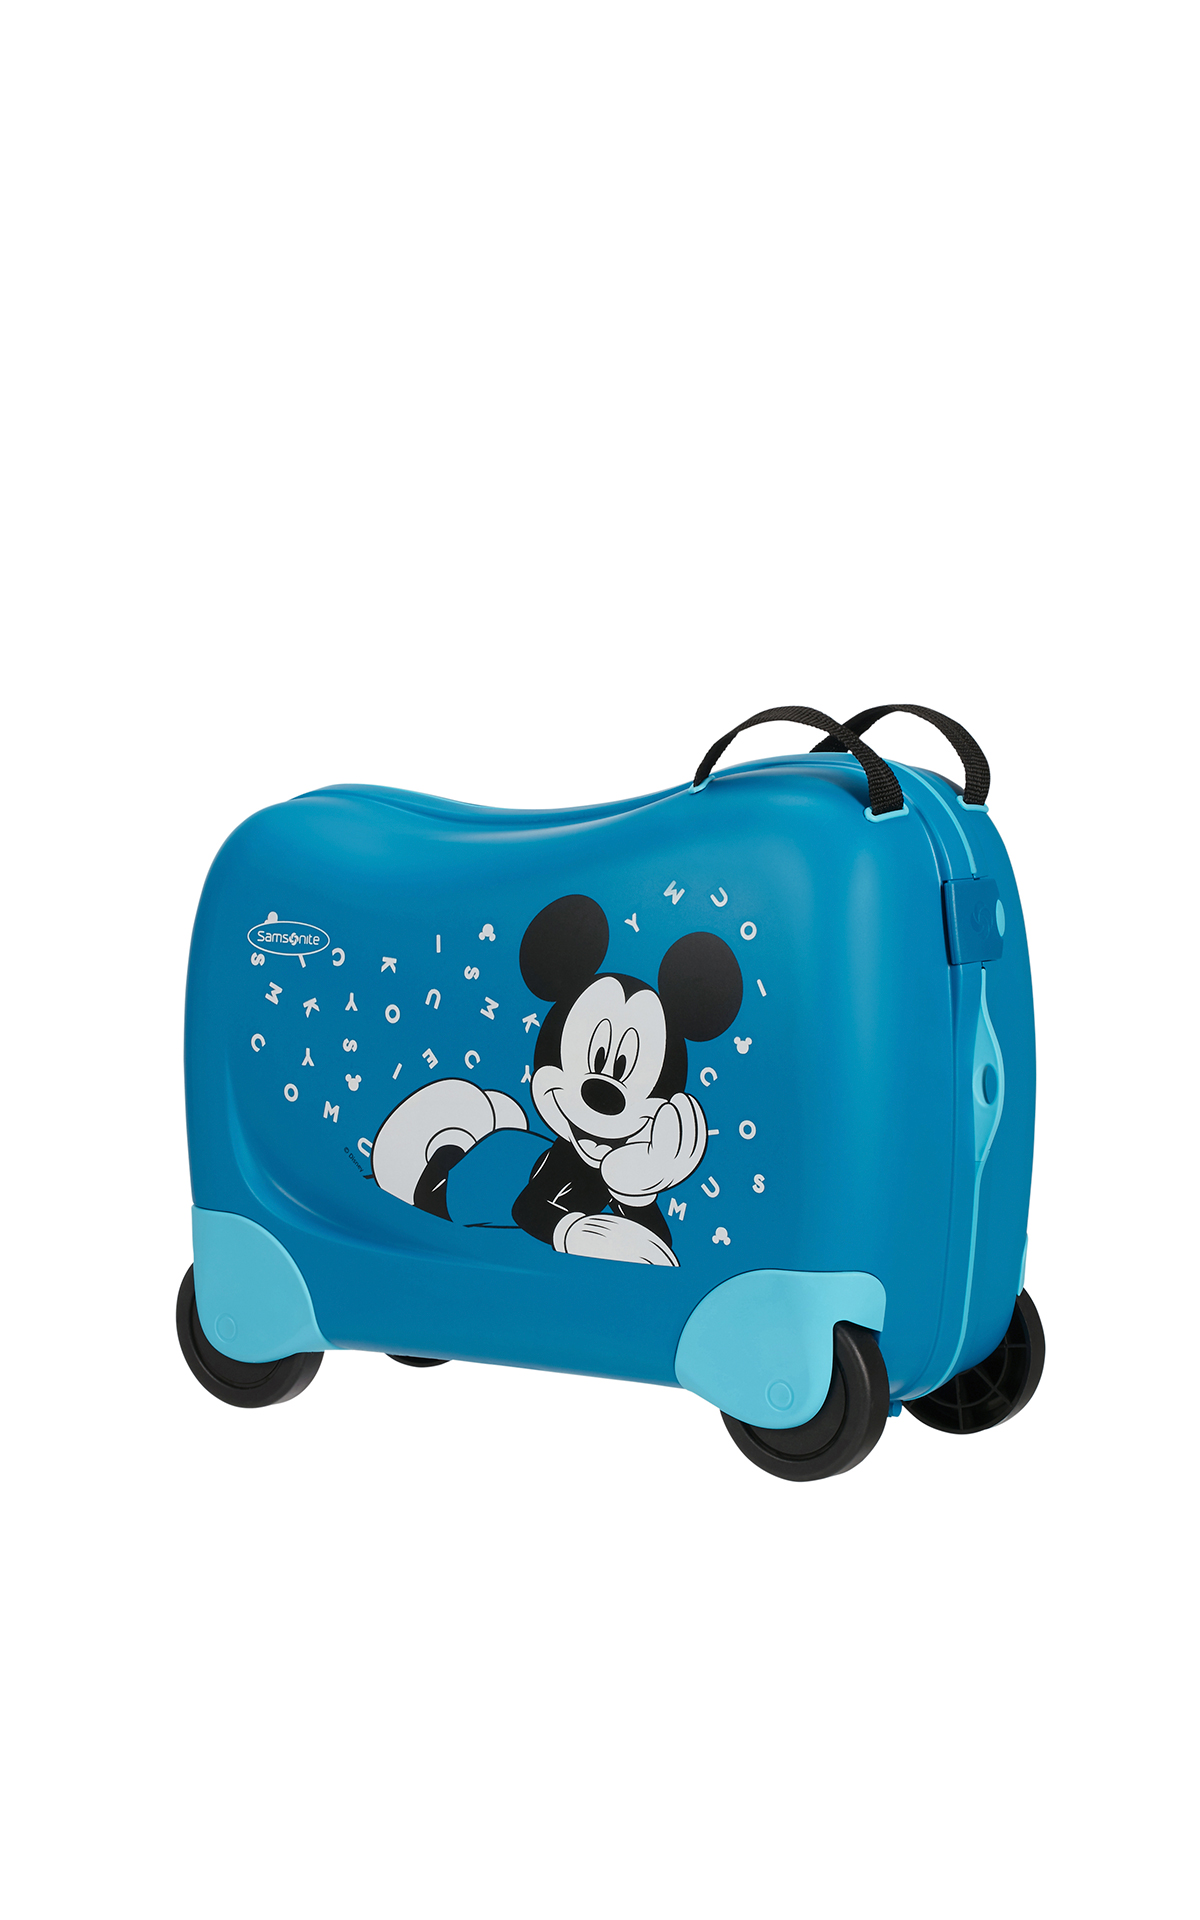 Samsonite child Disney suitcase La Vallée Village